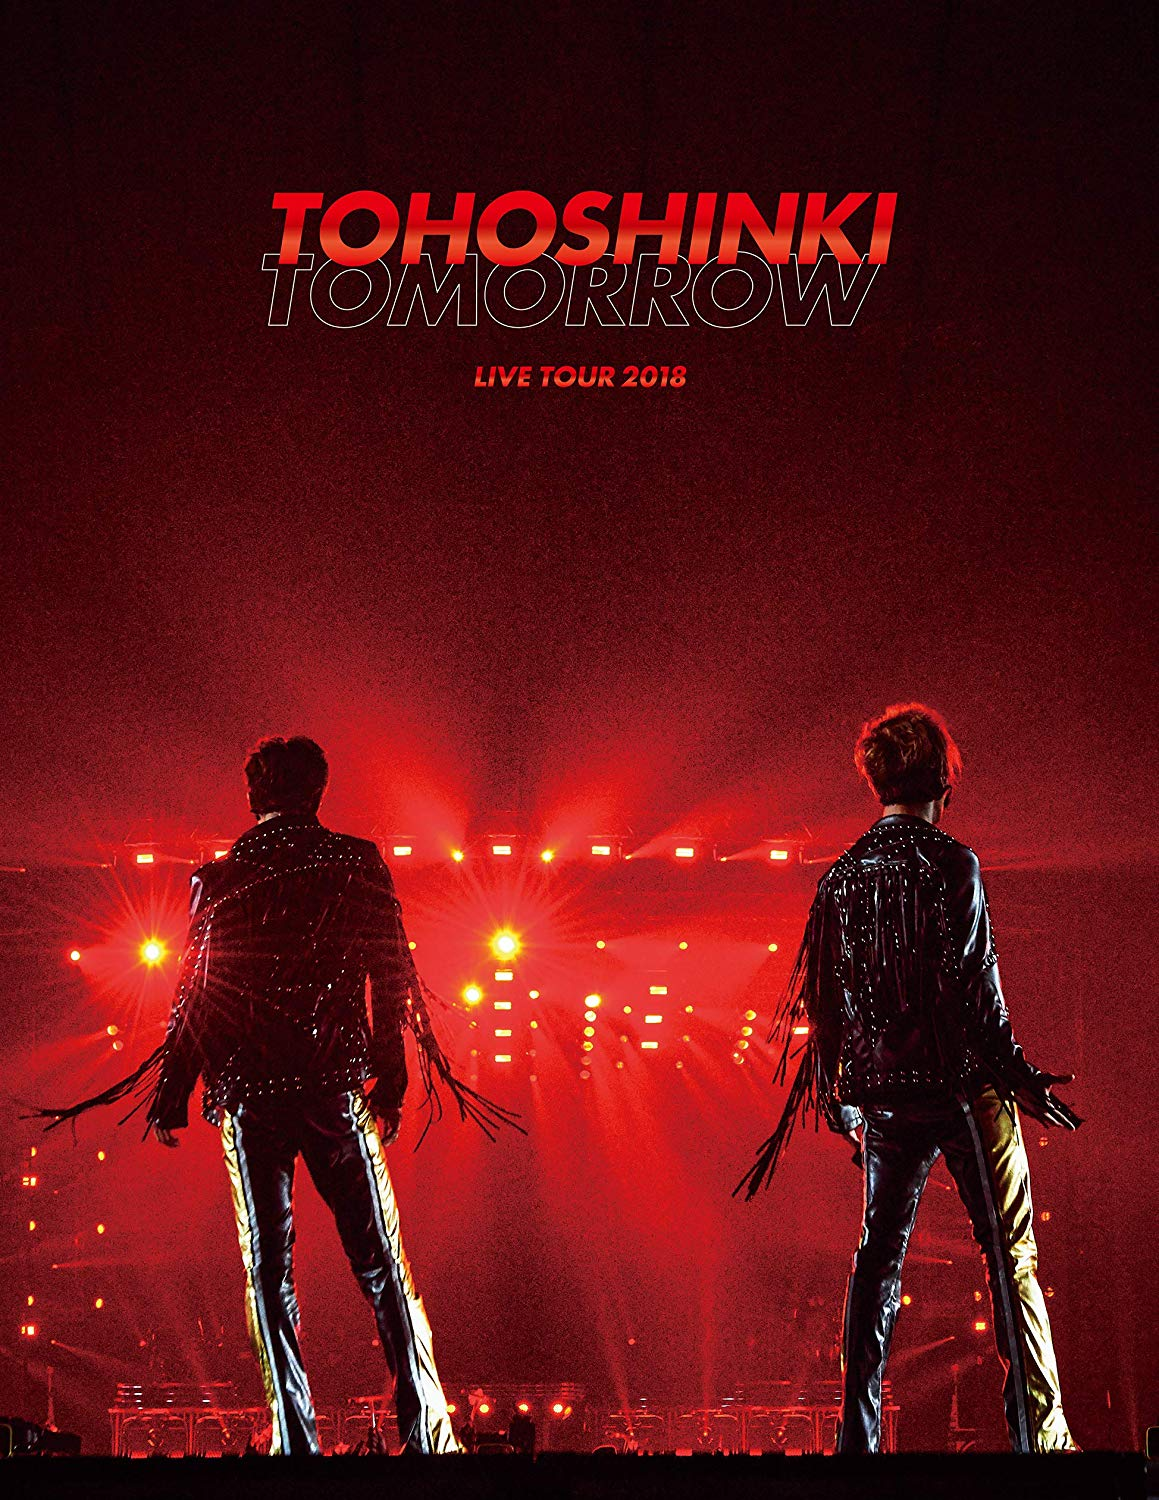 Tohoshinki/東方神起 LIVE TOUR 2018 ~TOMORROW~ [첫회한정반][DVD]